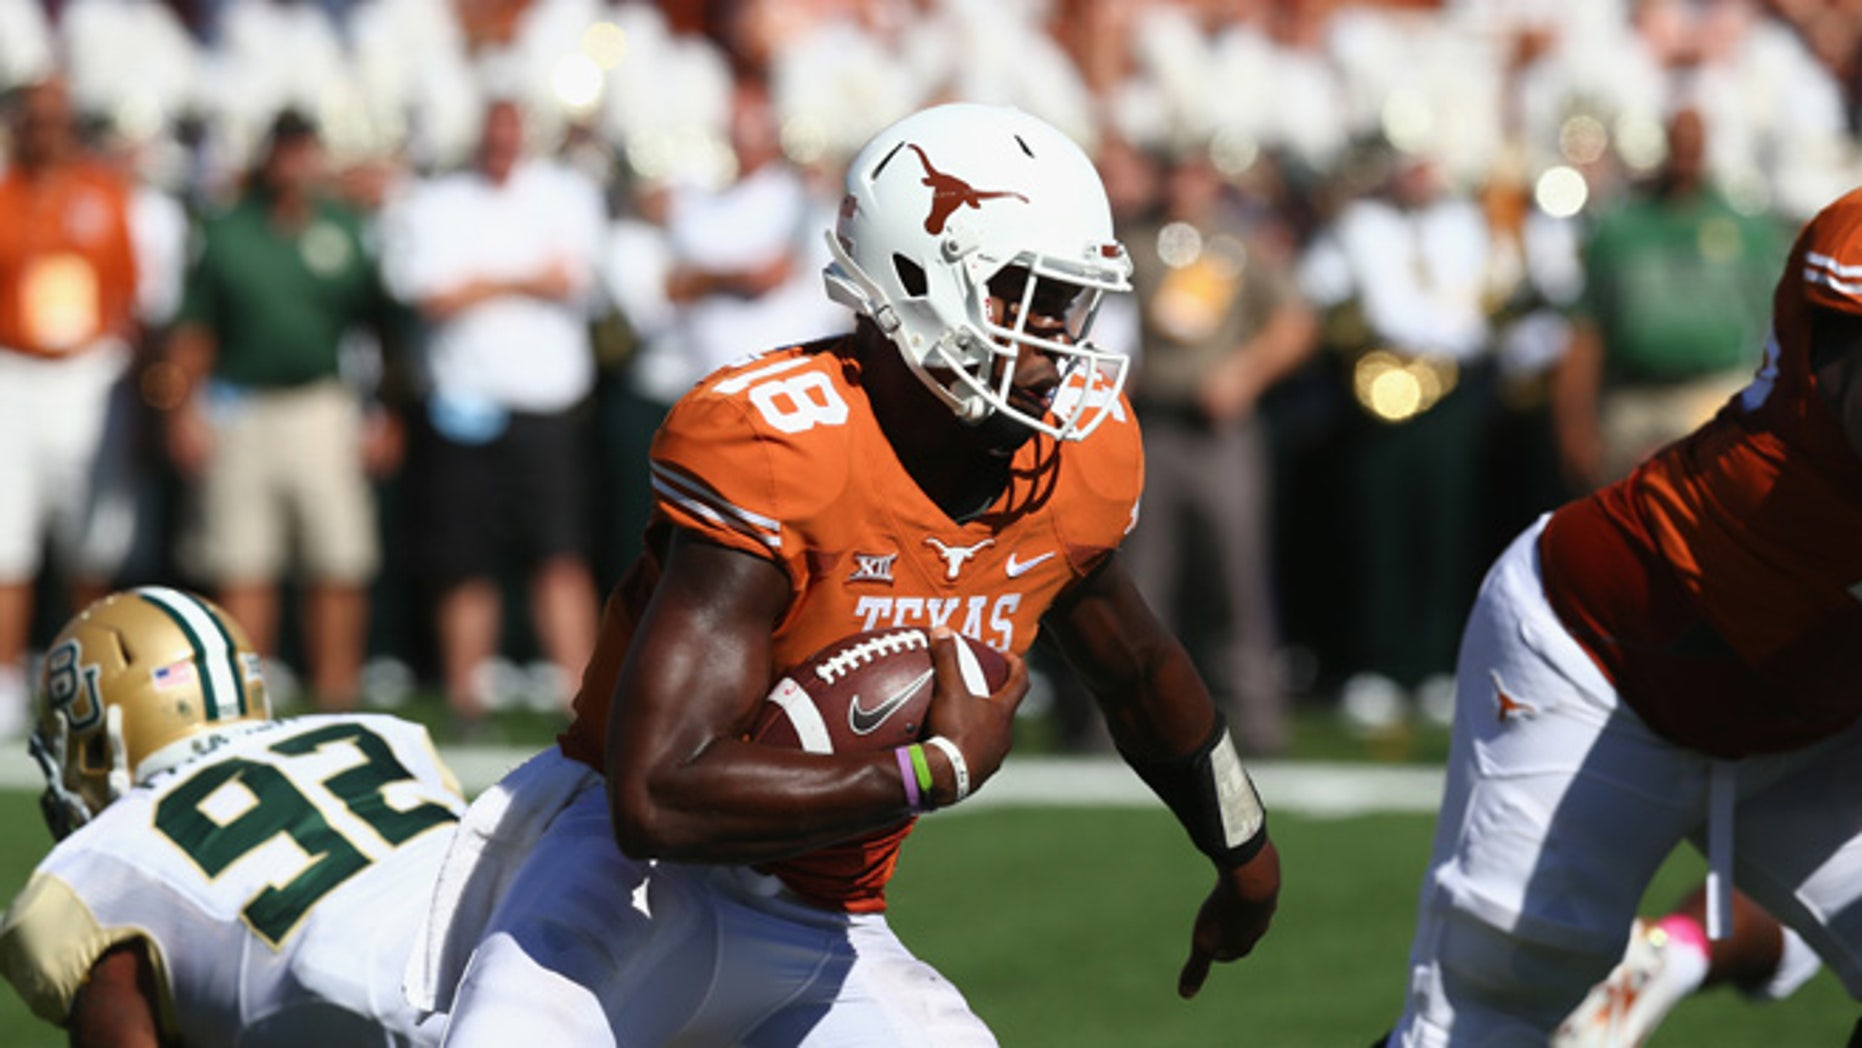 AUSTIN, TX - OCTOBER 04:  Tyrone Swoopes #18 of the Texas Longhorns runs the ball against the Baylor Bears at Darrell K Royal-Texas Memorial Stadium on October 4, 2014 in Austin, Texas.  (Photo by Ronald Martinez/Getty Images)